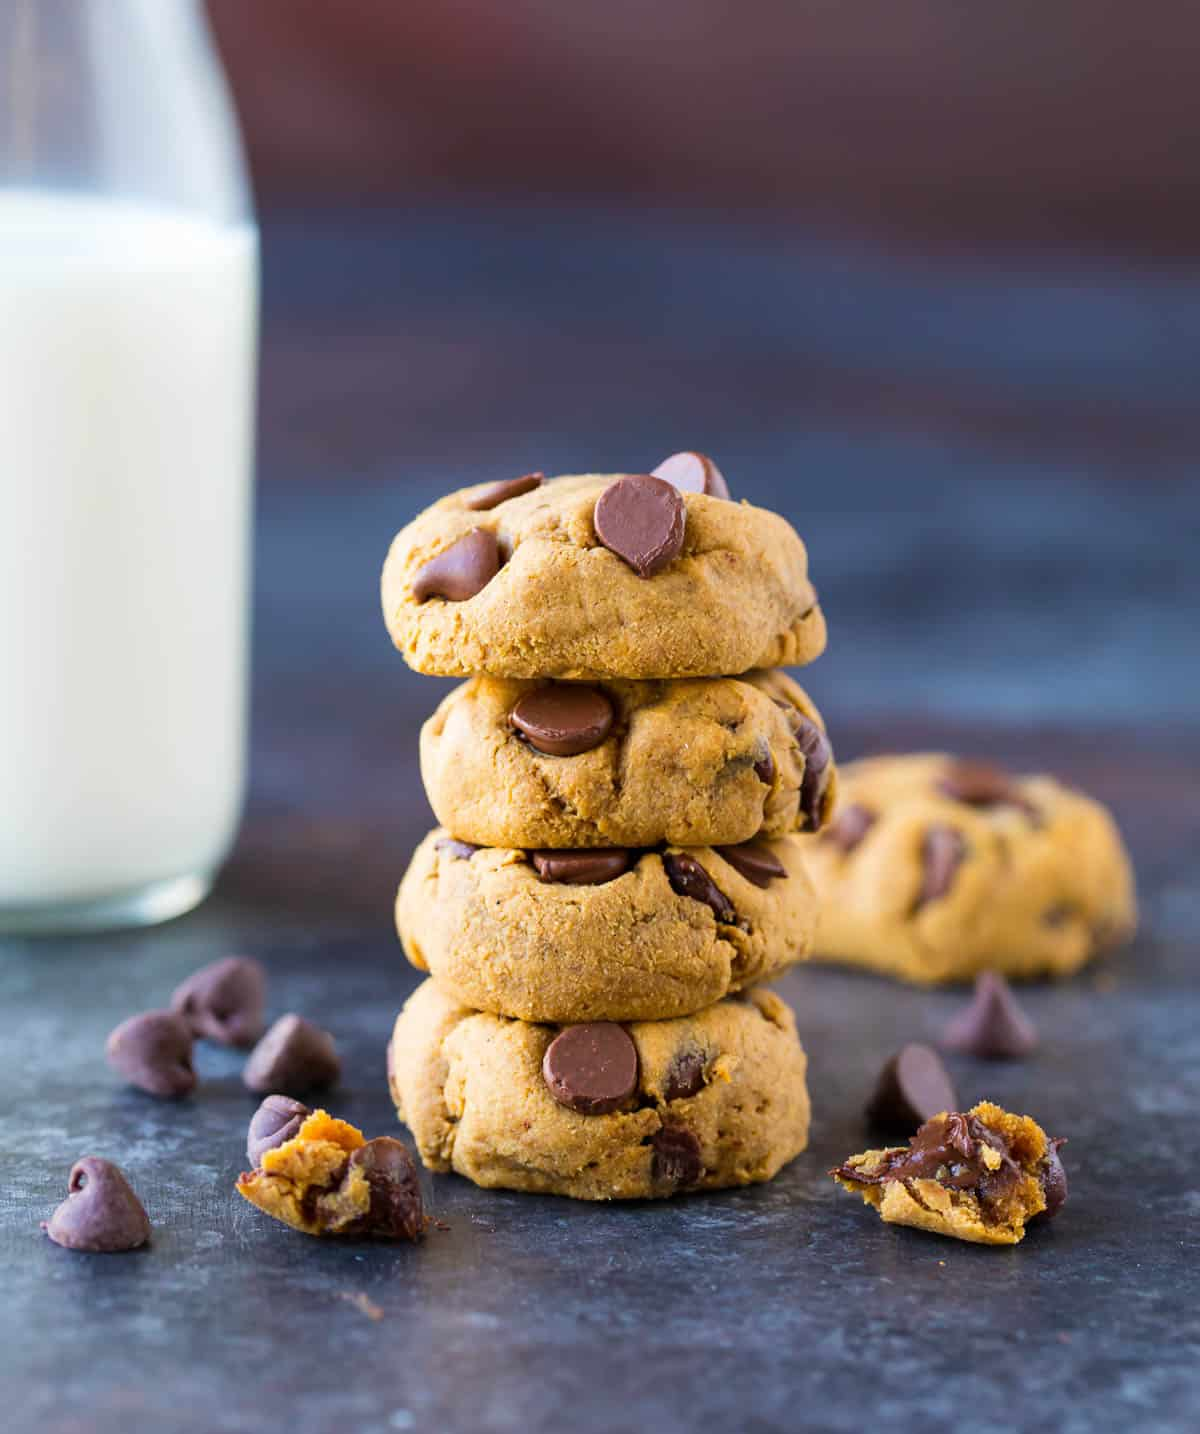 Easy Coconut Flour Cookies. These low carb, Paleo cookies are made with coconut flour, peanut butter, and chocolate chips! Perfect for a healthy dessert that everyone will love.